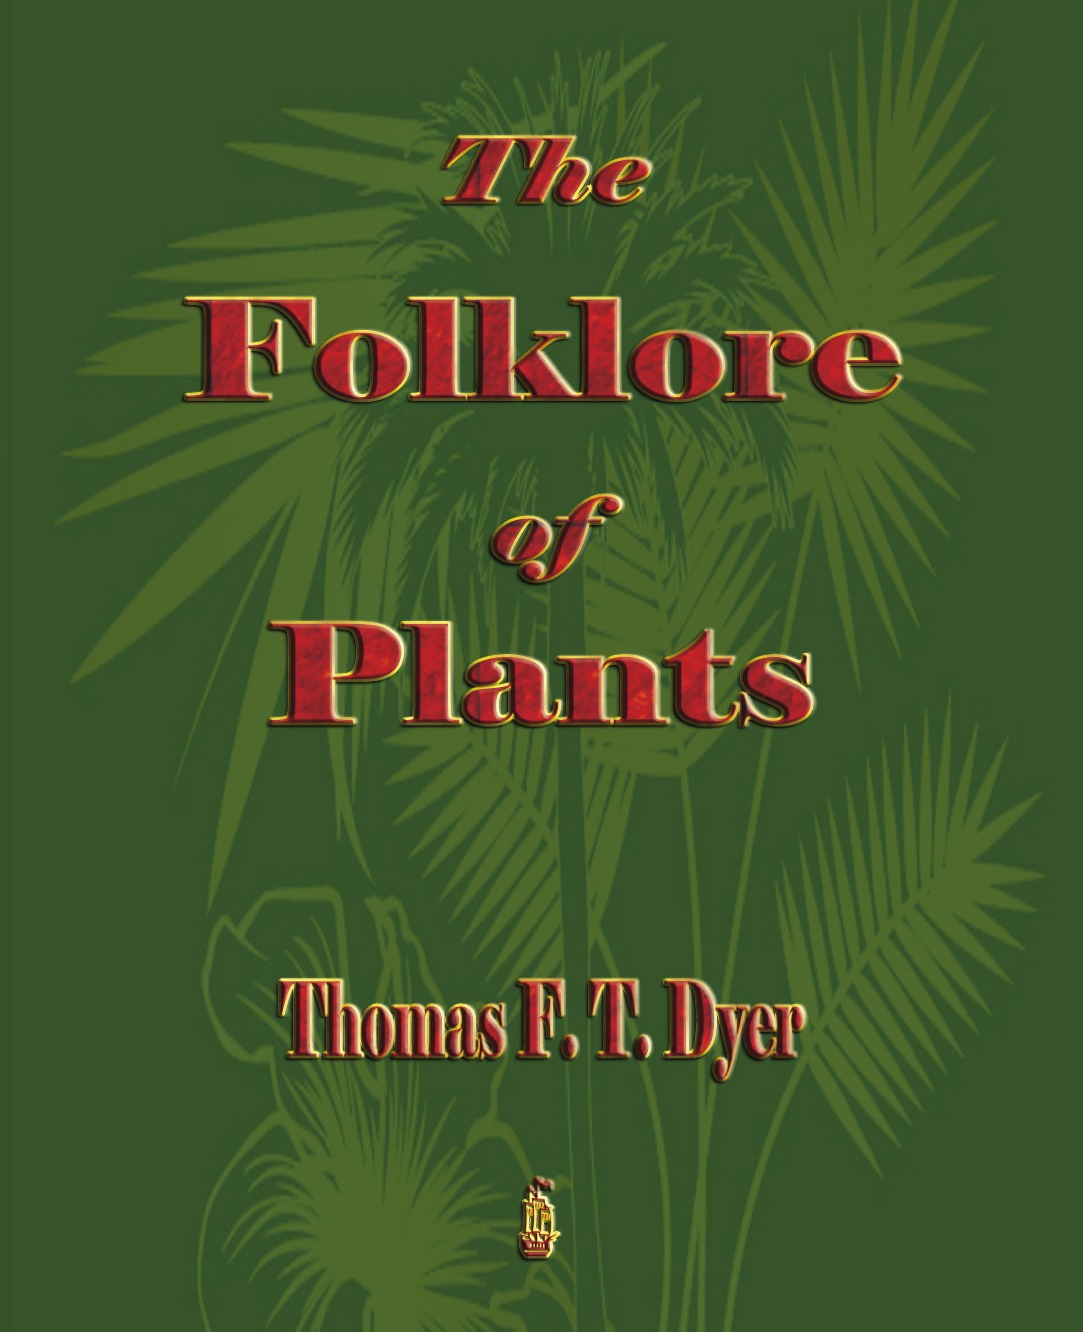 Thomas Firminger Thiselton-Dyer The Folk-Lore of Plants mathematical modelling and simulation of wastewater treatment plants